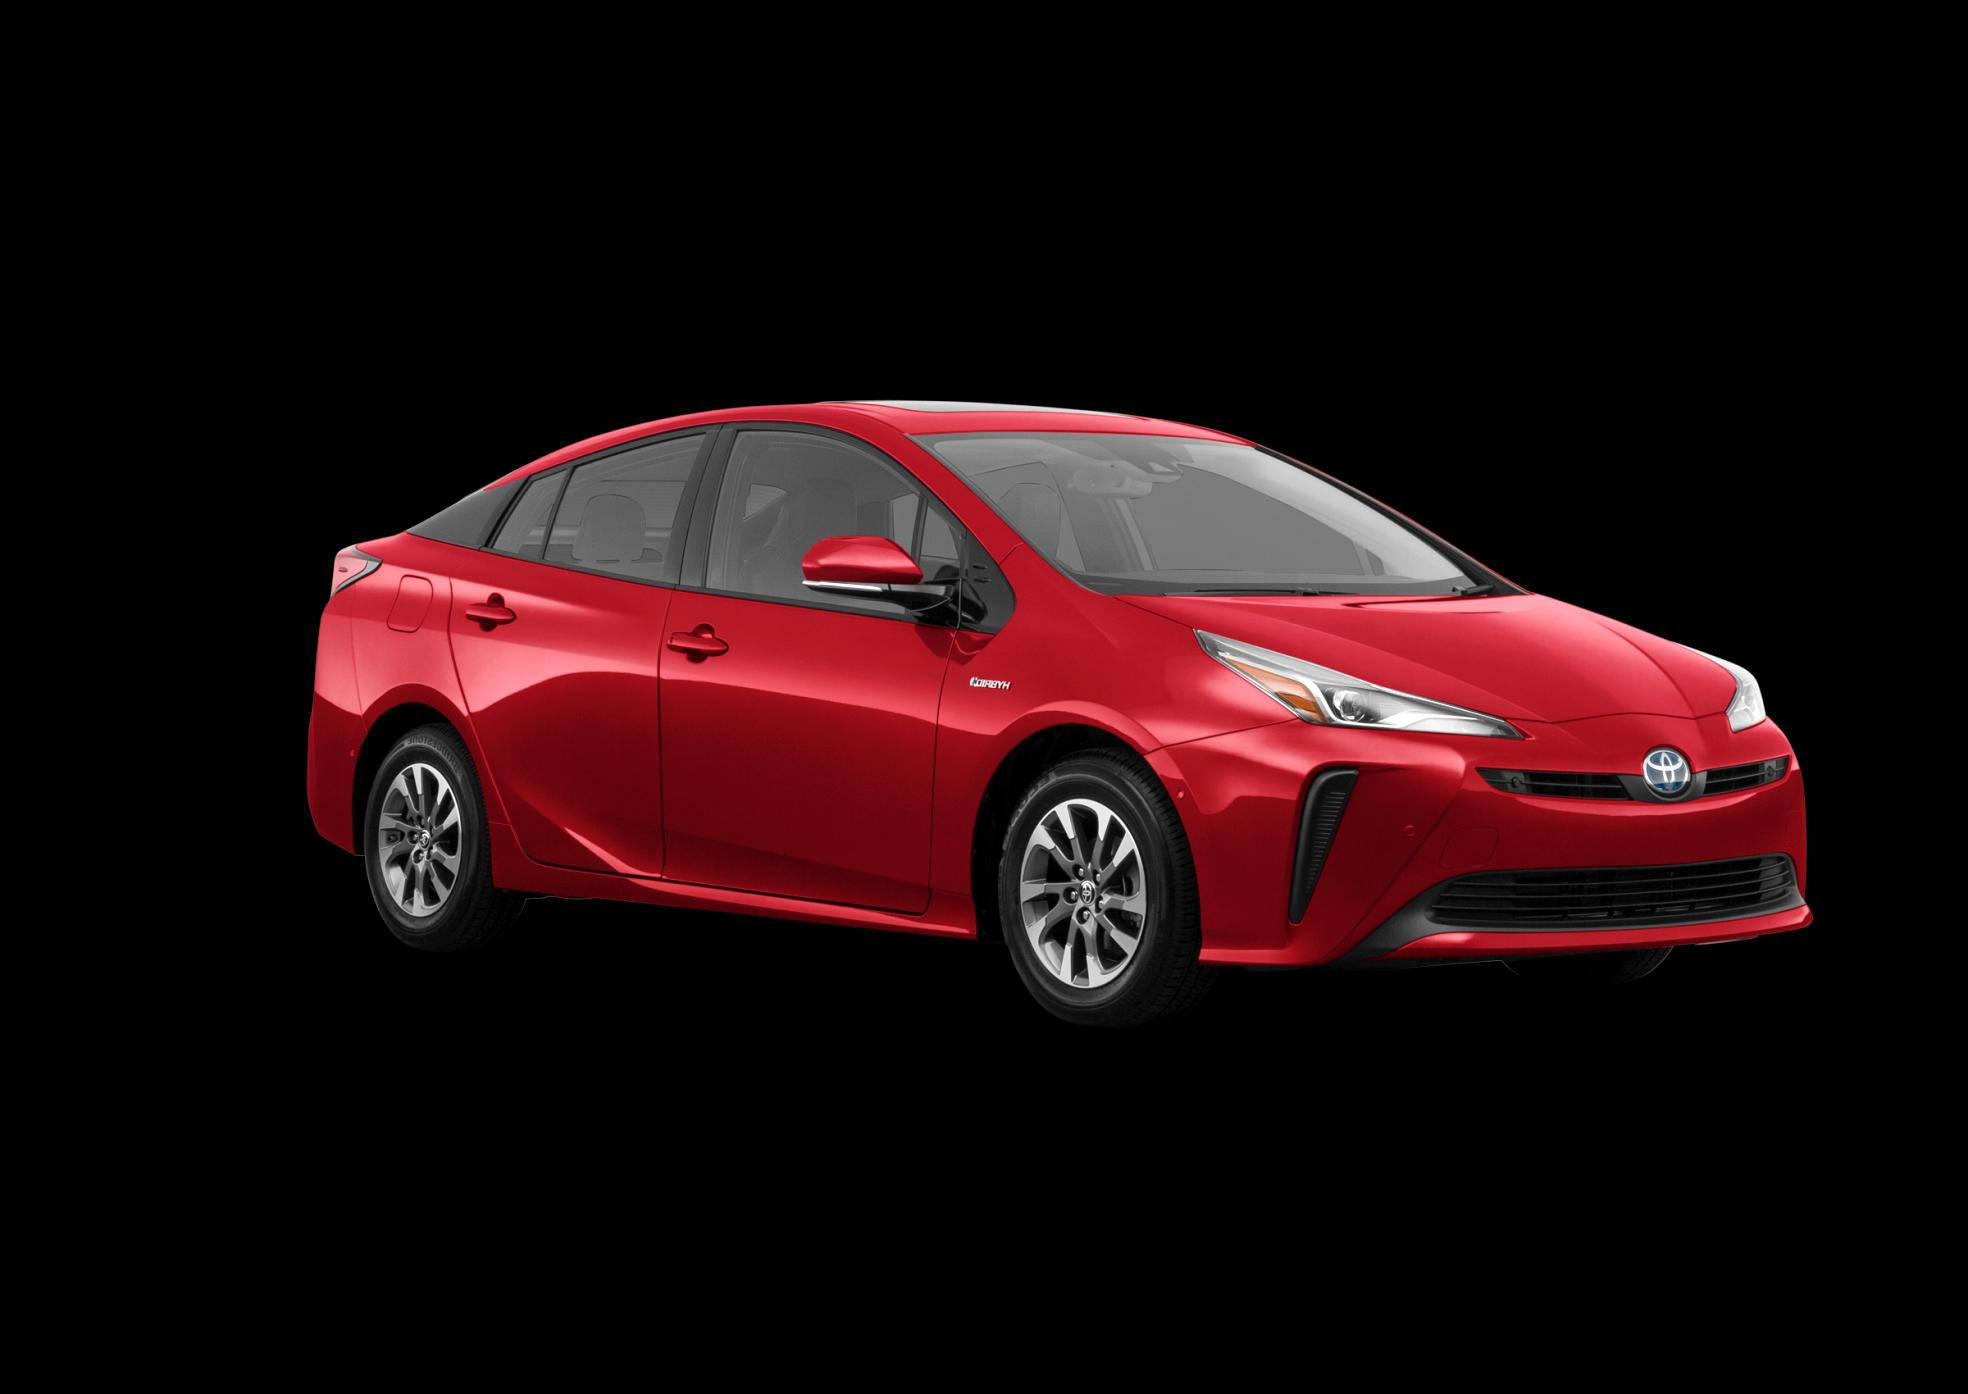 2020 toyota prius Specs and Review